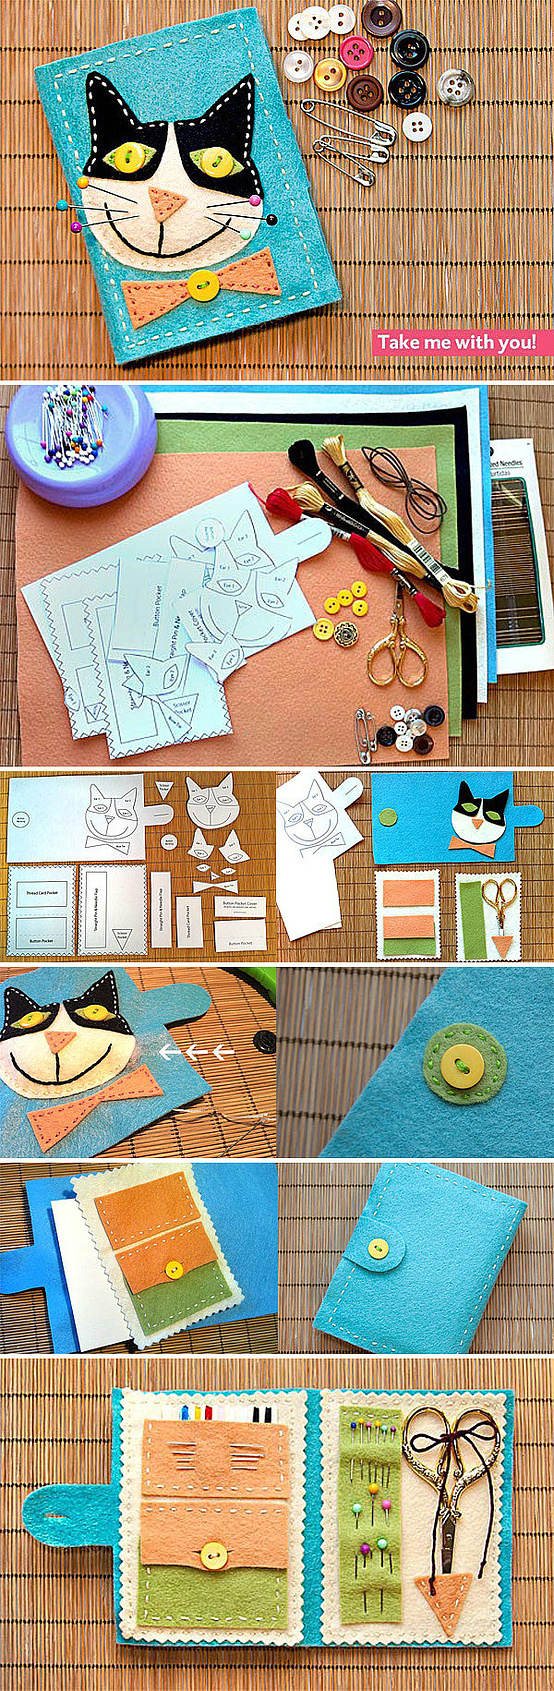 Kit de costura para viaje. (Tutorial paso a paso en http://www.sew4home.com/projects/fabric-art-accents/felt-travel-sewing-kitty)